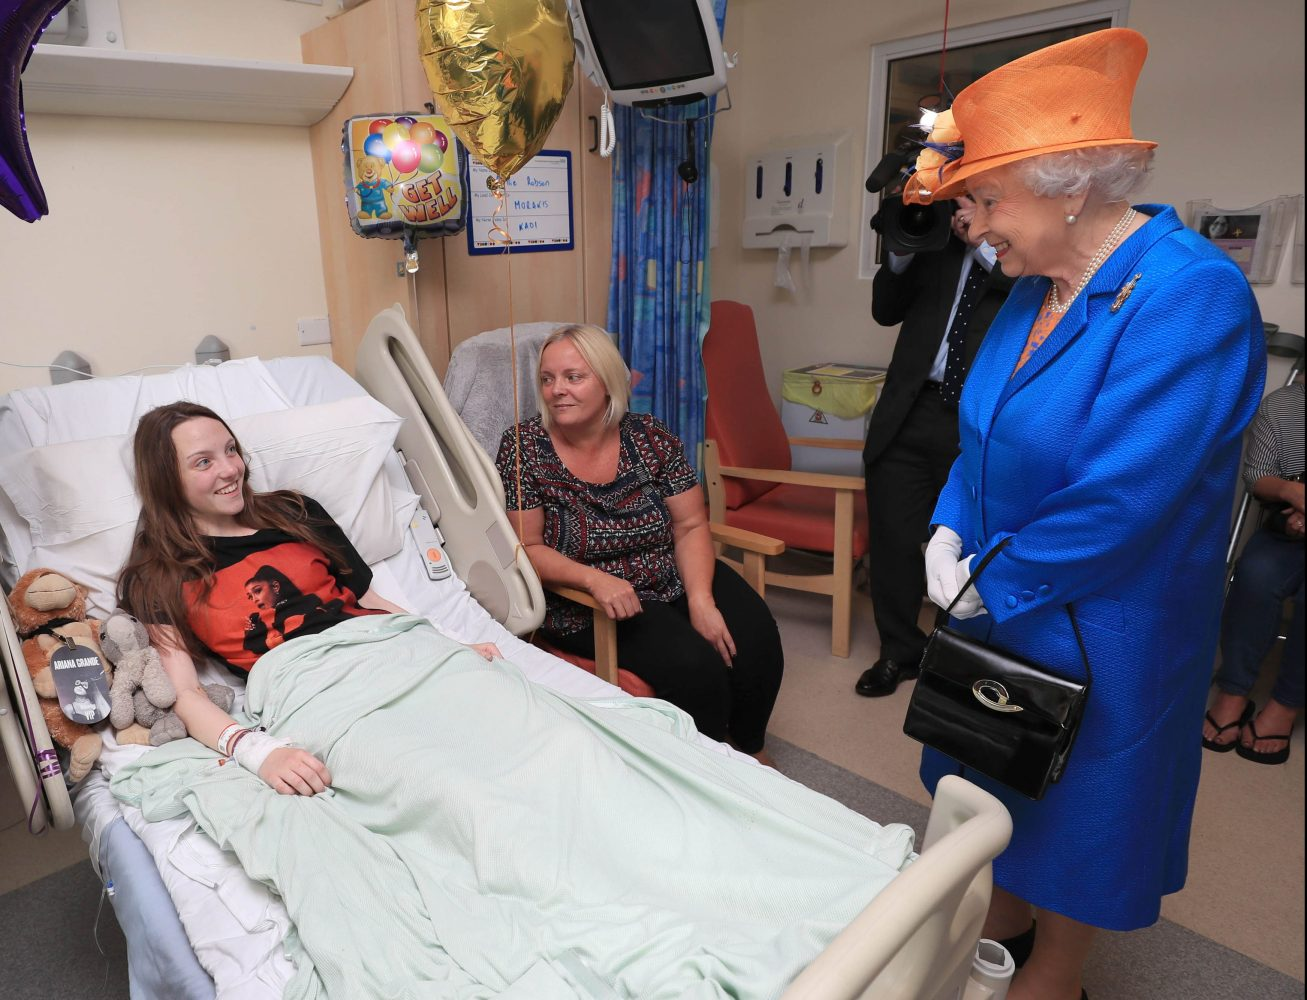 The Queen speaks to Millie Robson, 15, during a visit to the Royal Manchester Children's Hospital to meet victims of the terror attack earlier this week. Picture by  i-Images / Pool